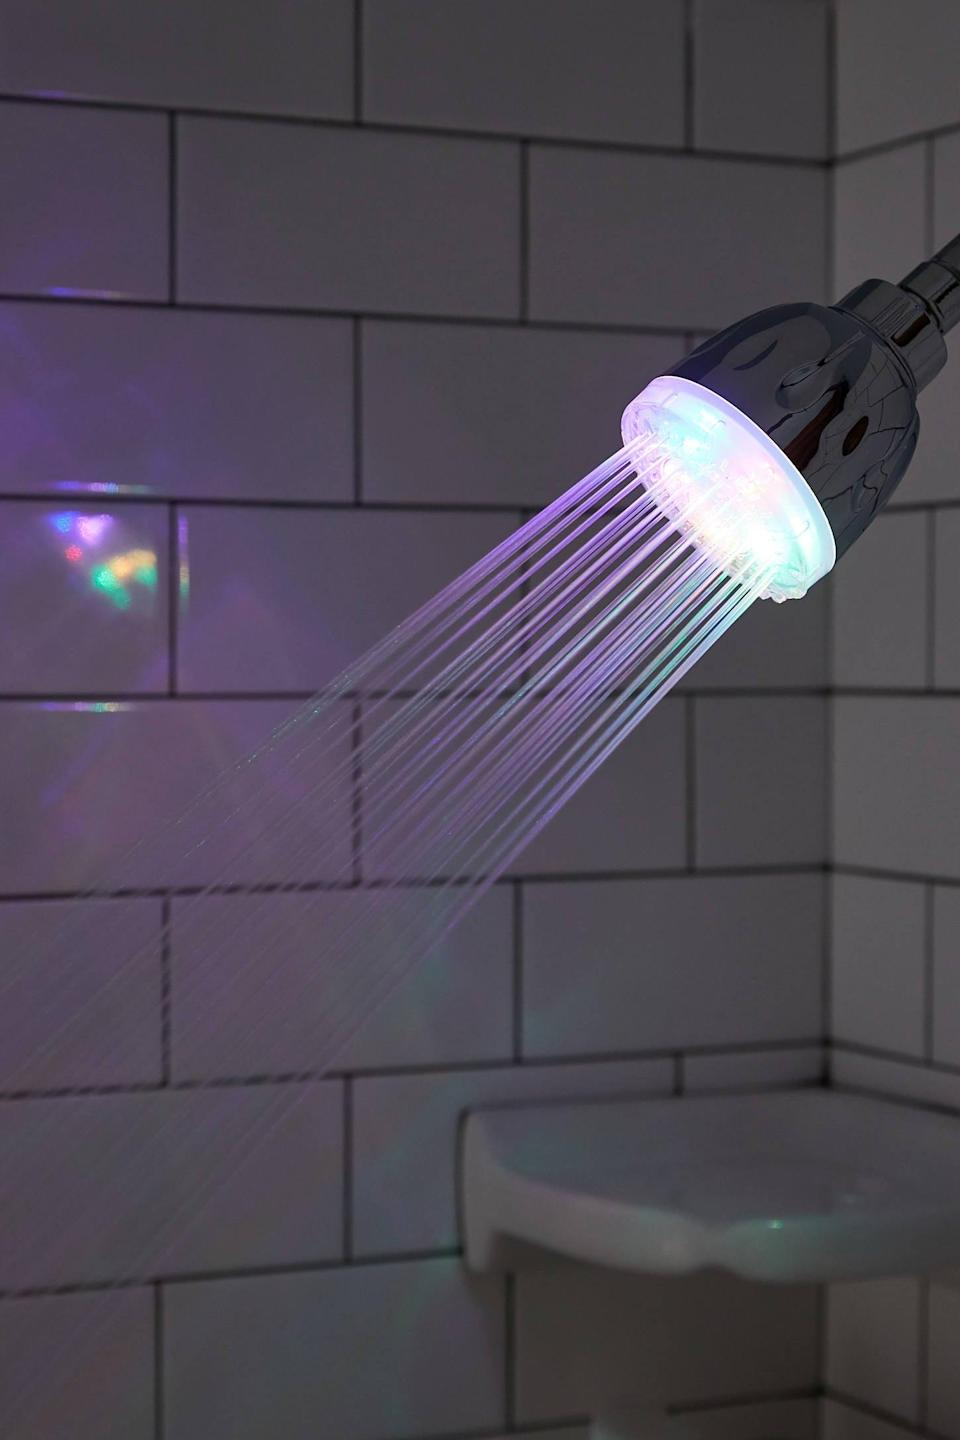 """<p>Who can resist this <a href=""""https://www.popsugar.com/buy/LED-Showerhead-496546?p_name=LED%20Showerhead&retailer=urbanoutfitters.com&pid=496546&price=16&evar1=geek%3Aus&evar9=26294675&evar98=https%3A%2F%2Fwww.popsugar.com%2Fnews%2Fphoto-gallery%2F26294675%2Fimage%2F46728669%2FLED-Showerhead&list1=shopping%2Cgadgets%2Choliday%2Cgift%20guide%2Choliday%20living%2Ctech%20gifts%2Cgifts%20under%20%24100&prop13=api&pdata=1"""" class=""""link rapid-noclick-resp"""" rel=""""nofollow noopener"""" target=""""_blank"""" data-ylk=""""slk:LED Showerhead"""">LED Showerhead</a> ($16, originally $20)?</p>"""